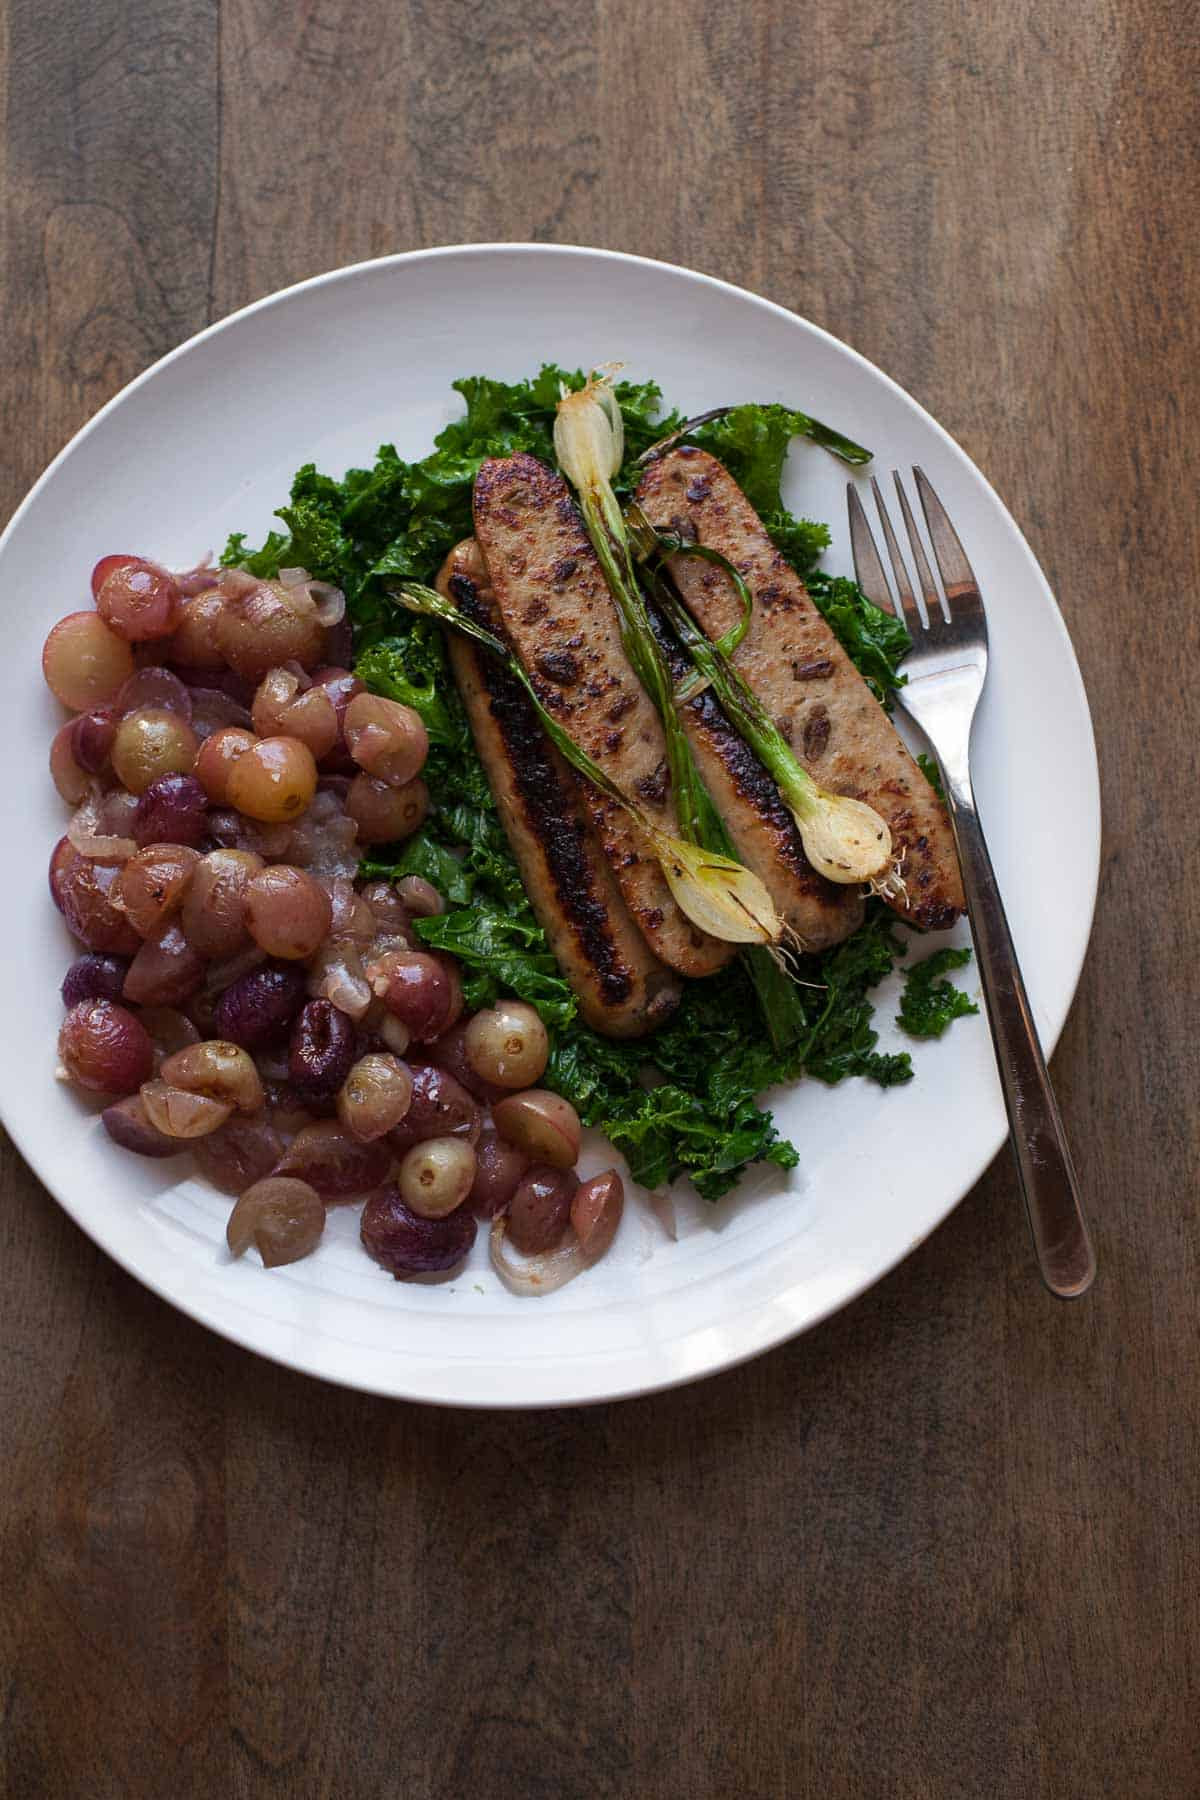 Chicken Apple Sausage with Kale and Roasted Grapes